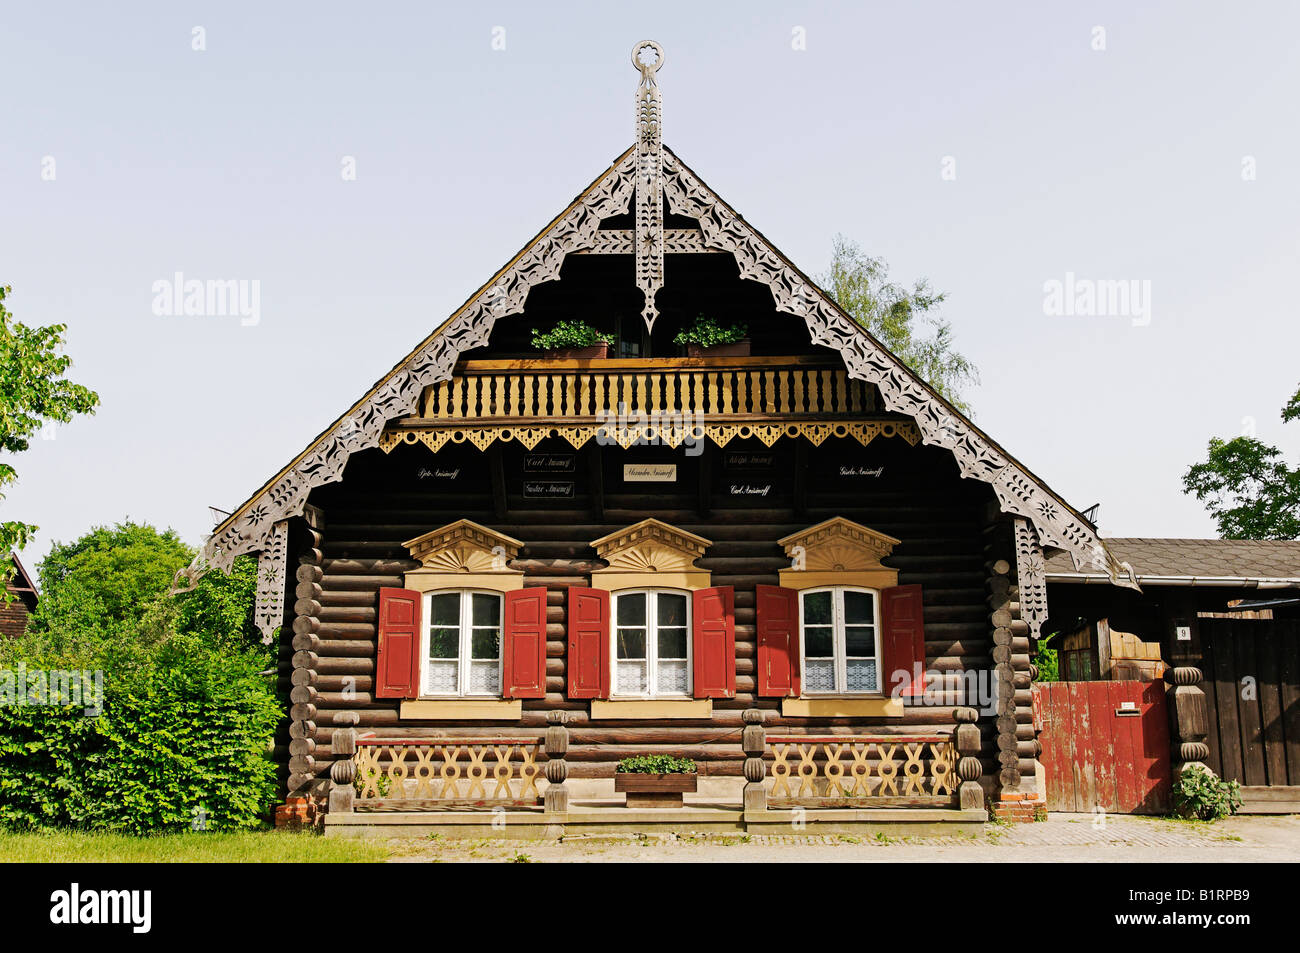 timber building in the russian colony alexandrowka potsdam stock photo royalty free image. Black Bedroom Furniture Sets. Home Design Ideas